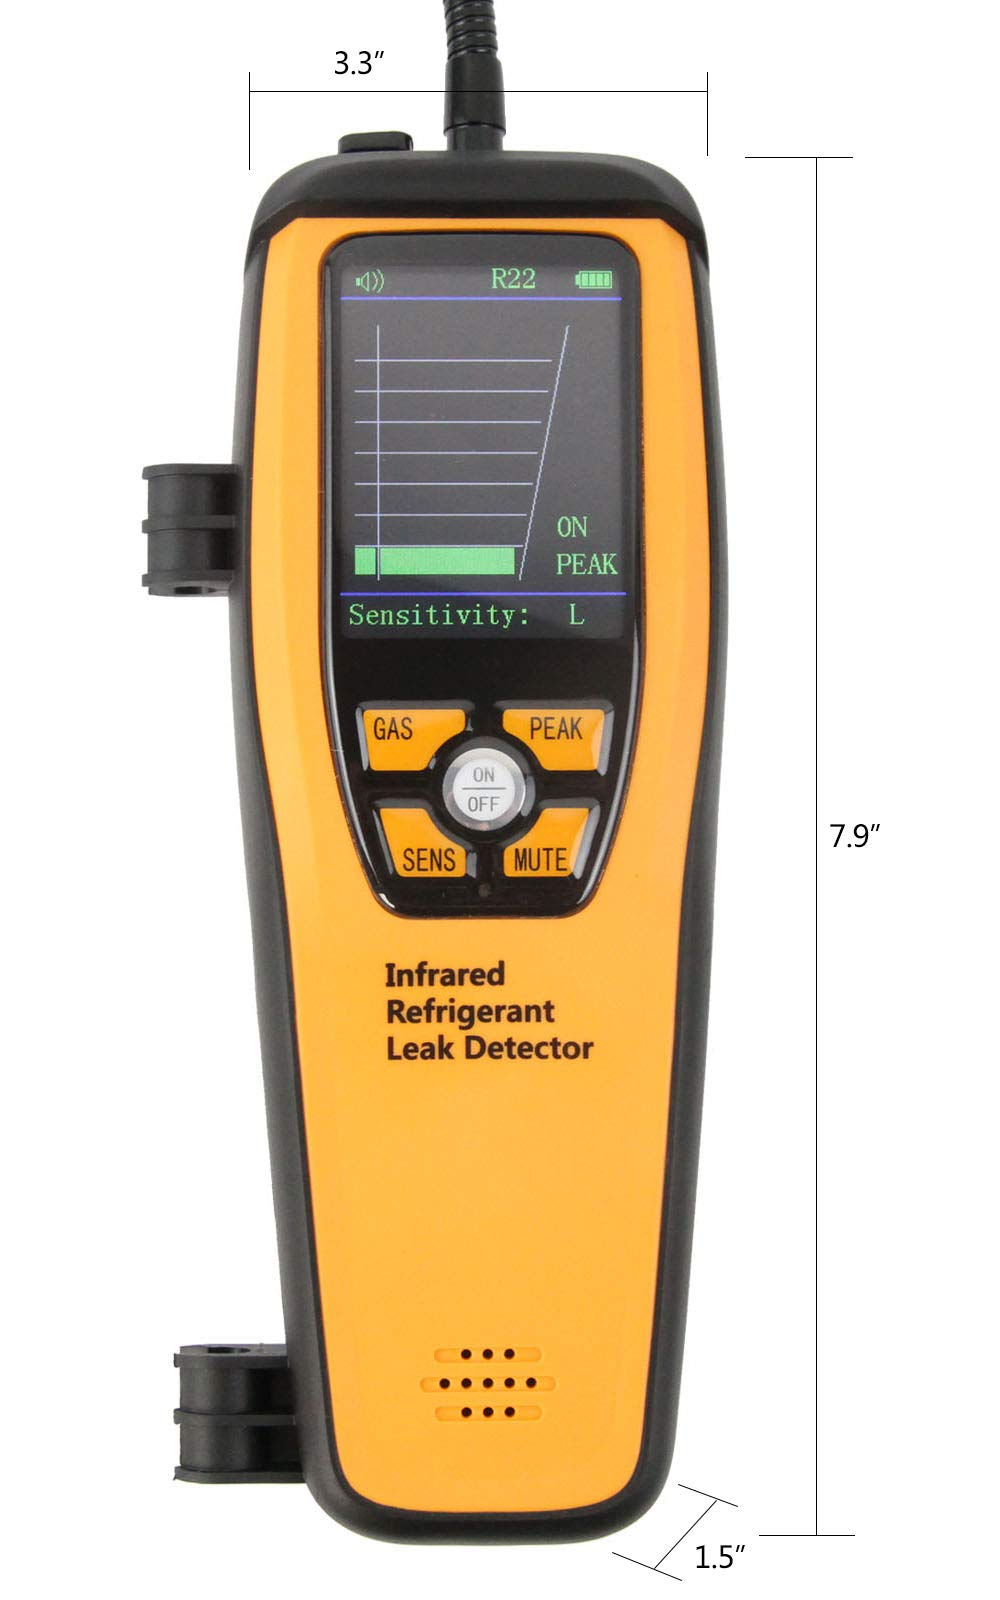 Elitech ILD-300 Advanced Refrigerant Leak Detector Halogen Tester for HVAC Rechargeable CFCs HCFCs HFCs 10 Years' Life 【3 Years Warranty】 by Elitech (Image #4)